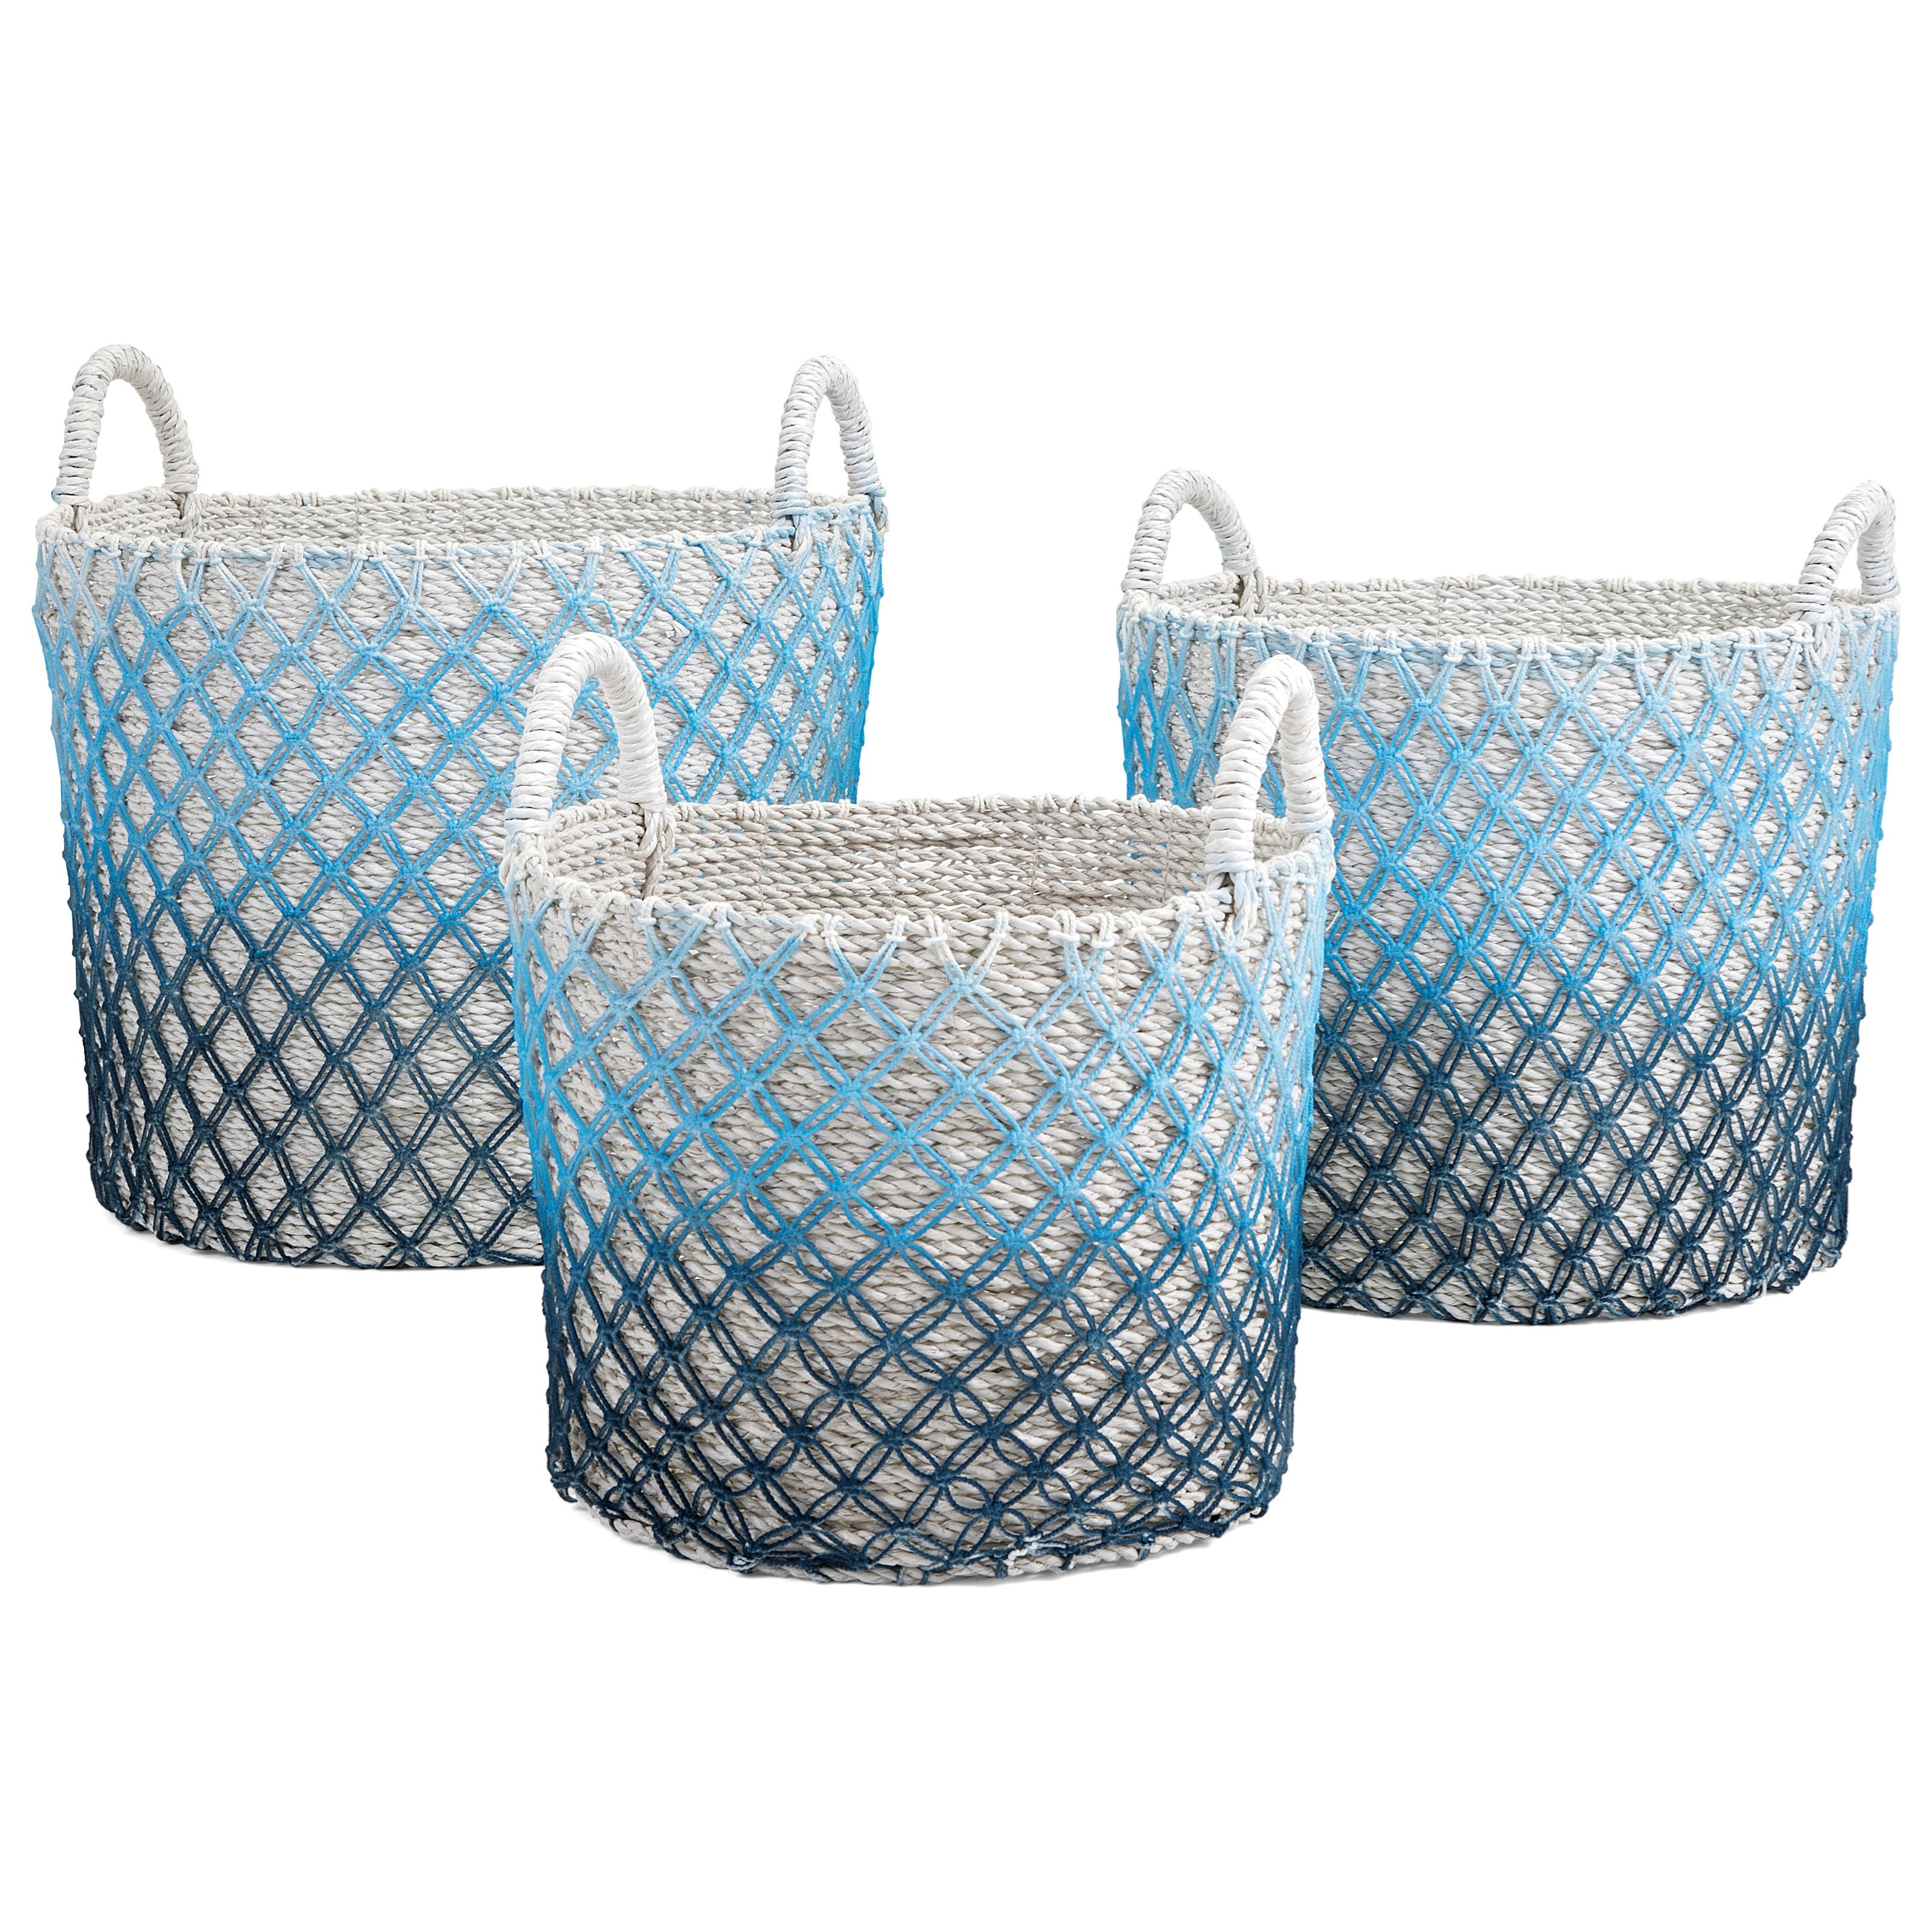 Baskets Crochet Ombre Basket - Set of 3 by IMAX Worldwide Home at Alison Craig Home Furnishings